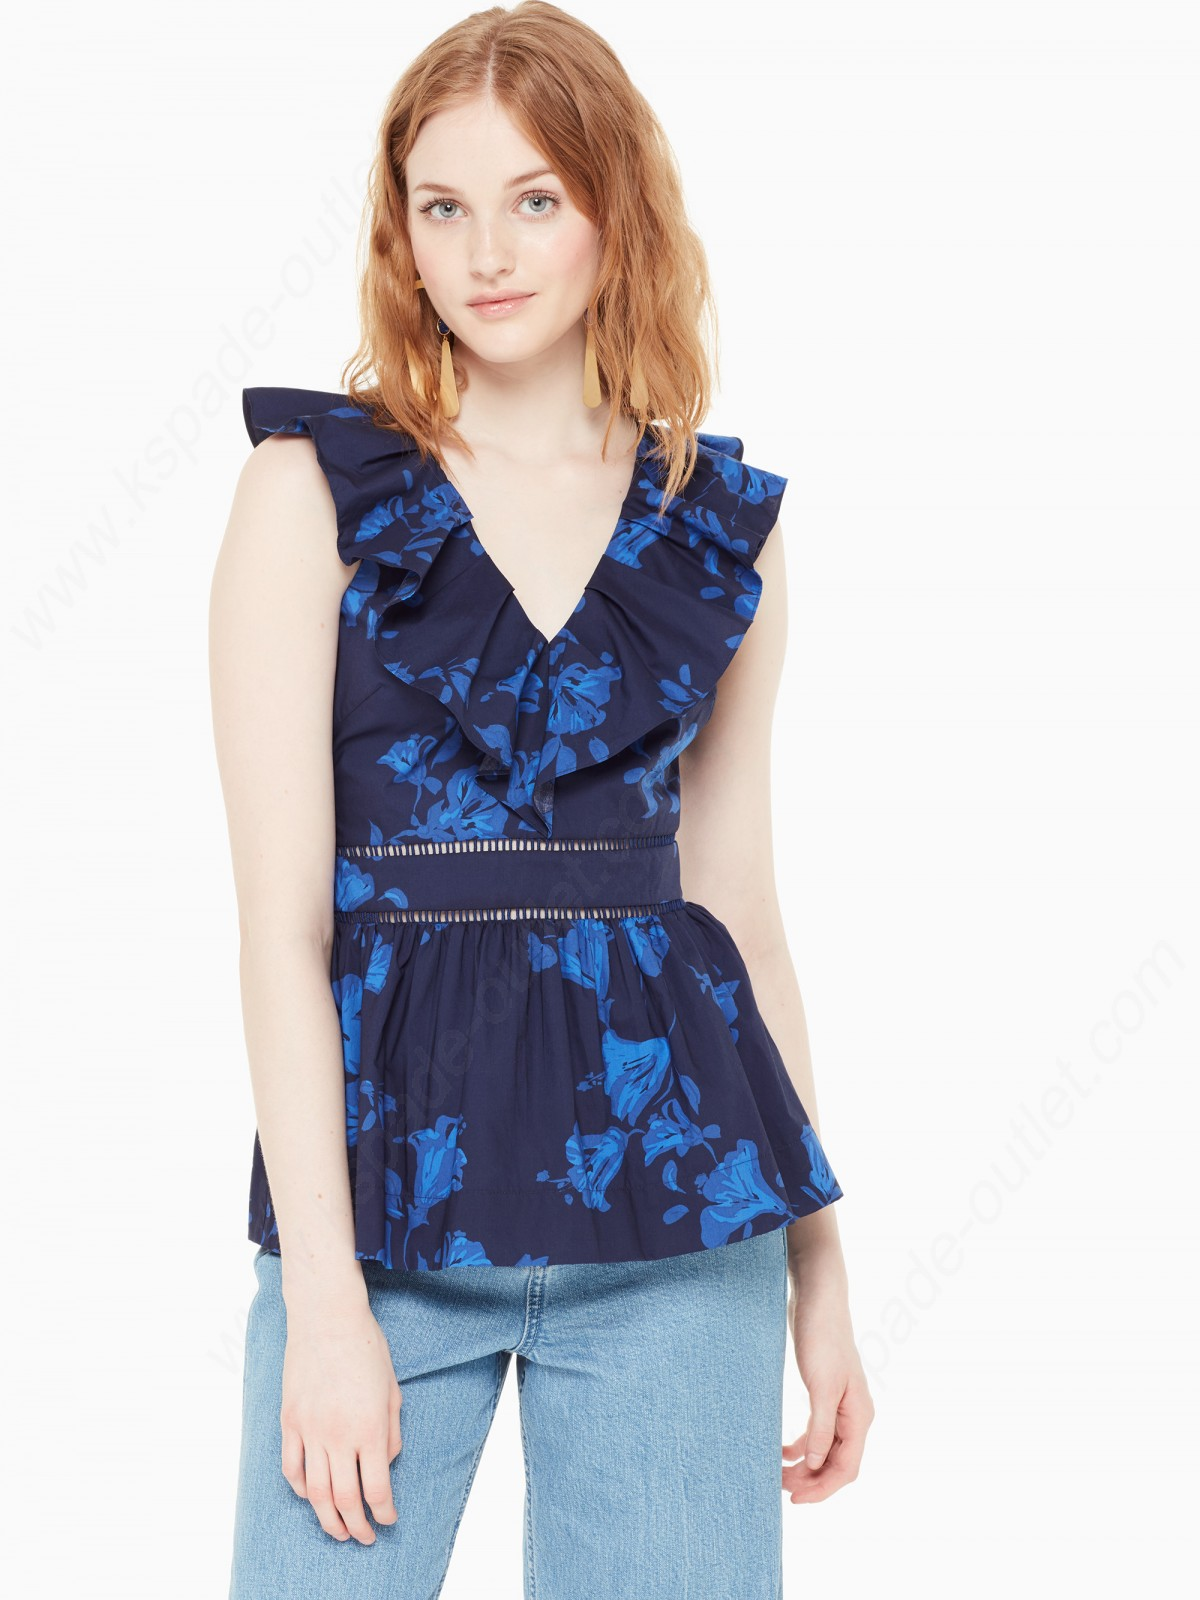 Kate Spade Womens Clothing Hibiscus Ruffle Neck Top - -0